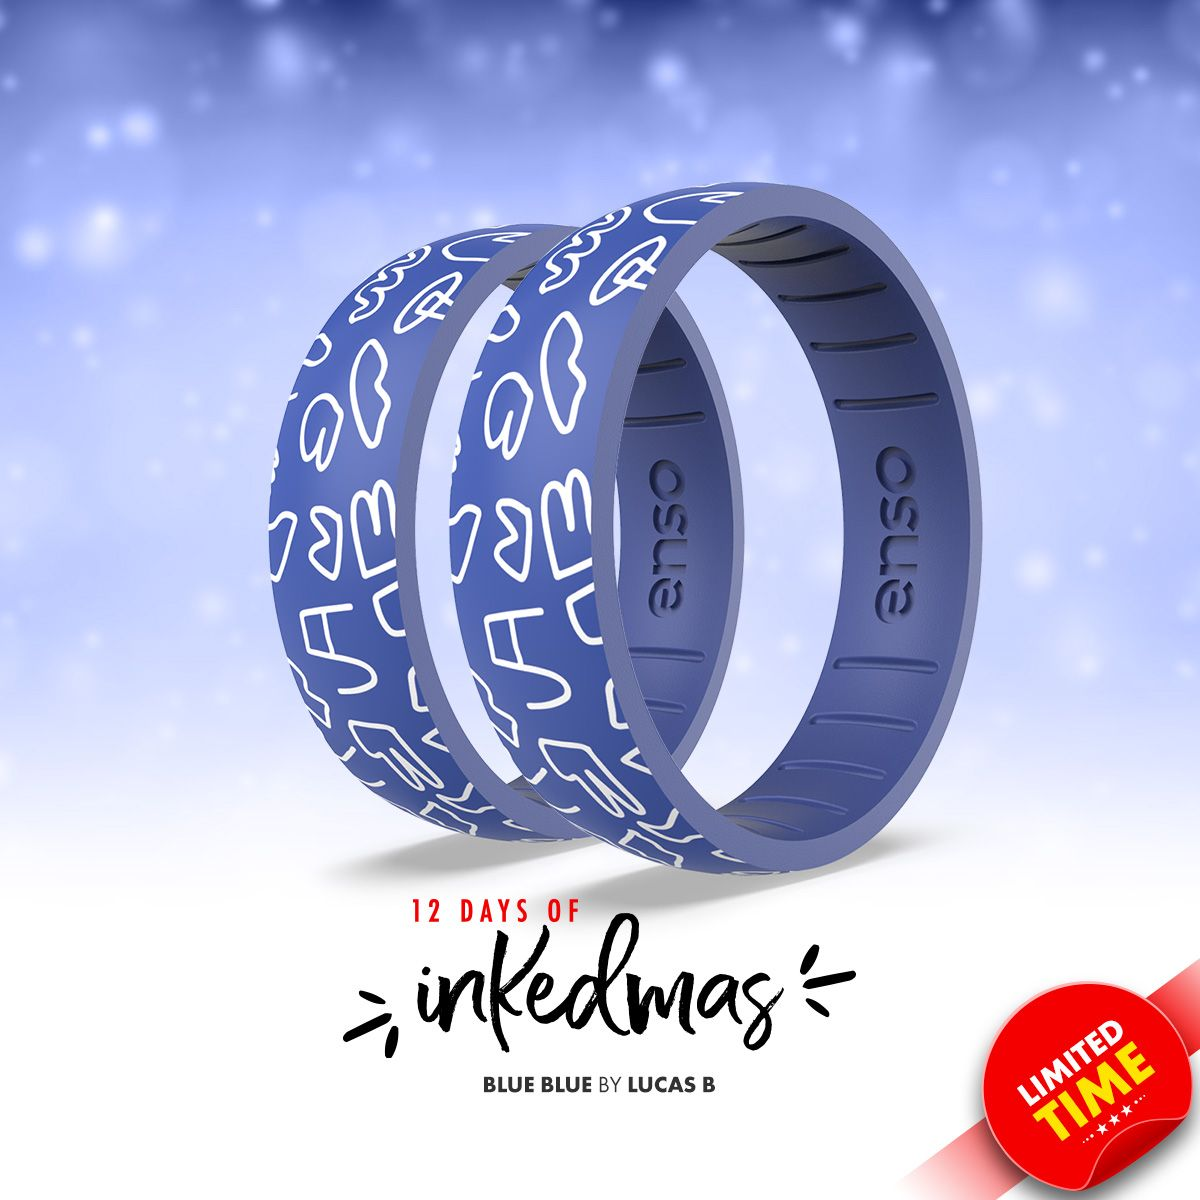 On the eighth day of #INKEDmas Enso Rings gave to me ... a Blue Blue ring by @lucas_beaufort.   https://t.co/2Ph90Frrf1 https://t.co/Z5Vft1PT67